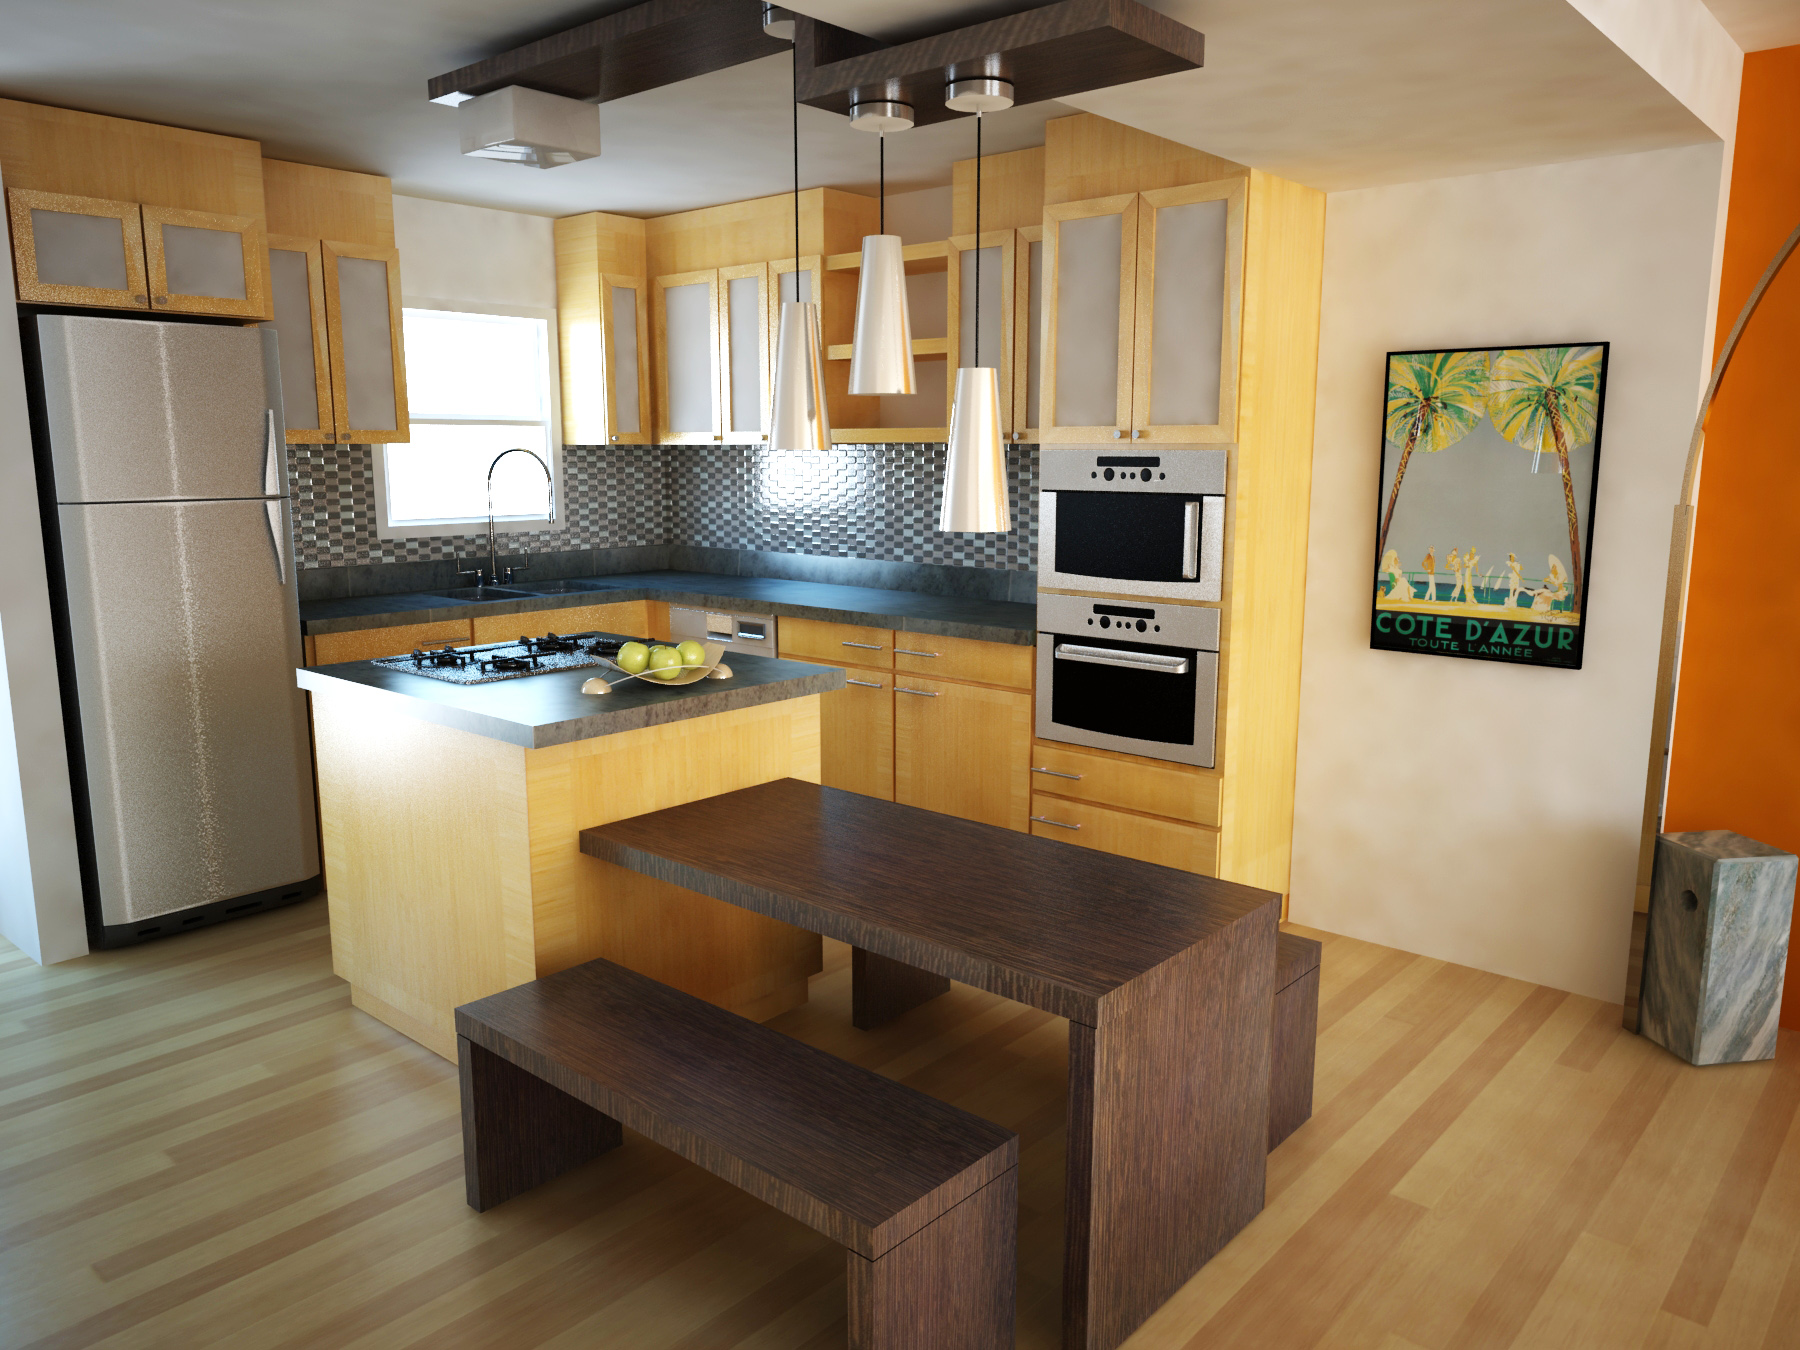 RMS_pilonieta-modern-quaint-kitchen_s4x3